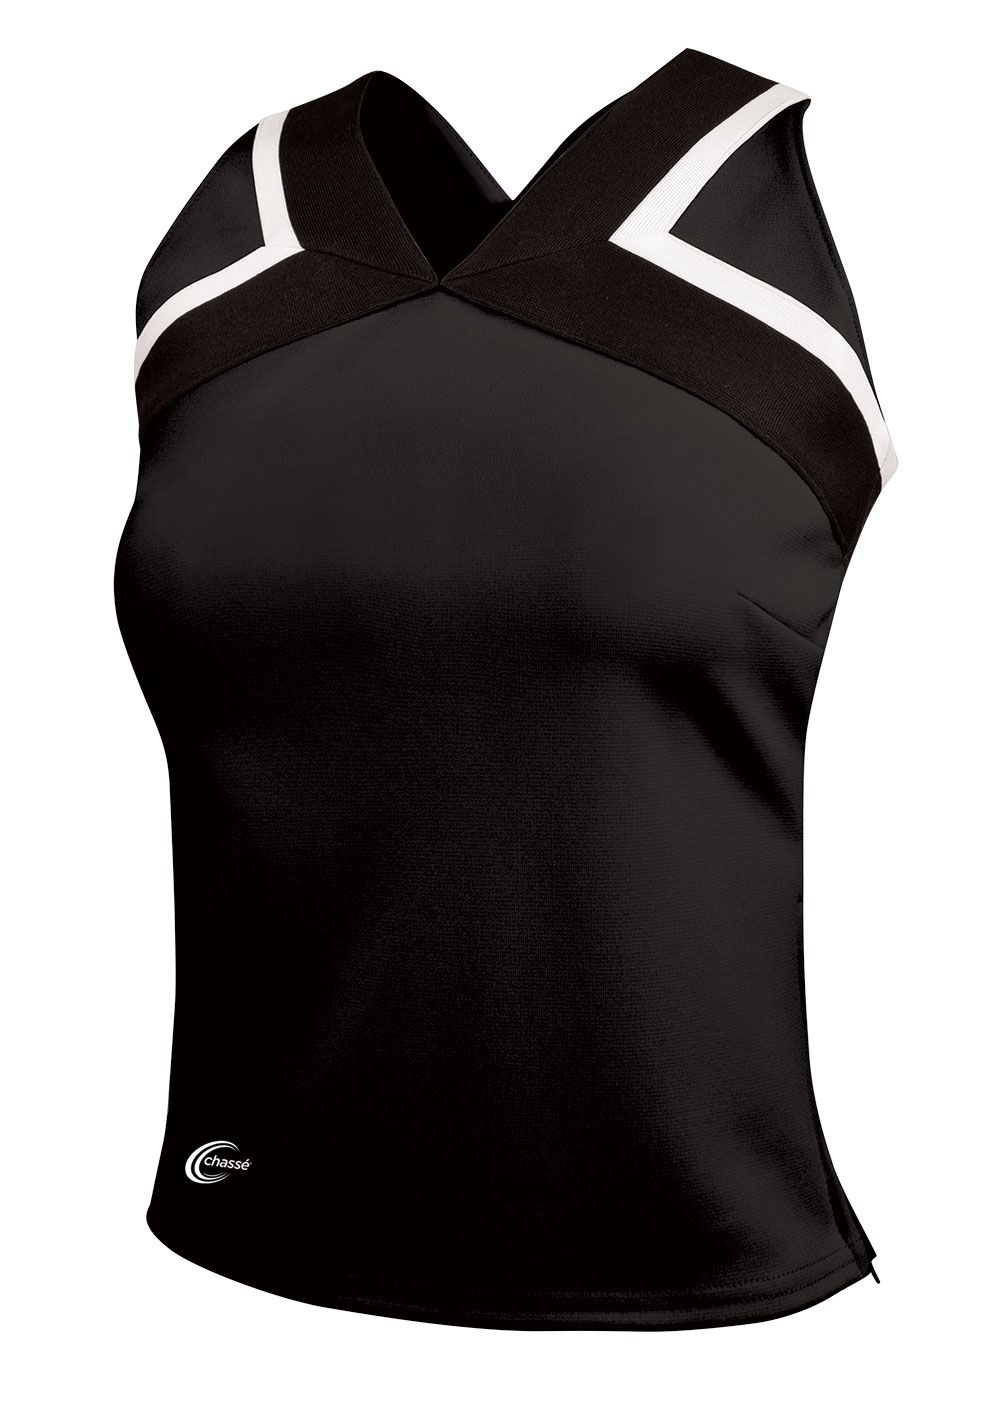 Chassé® Arena Shell Top Omni Cheer (With images